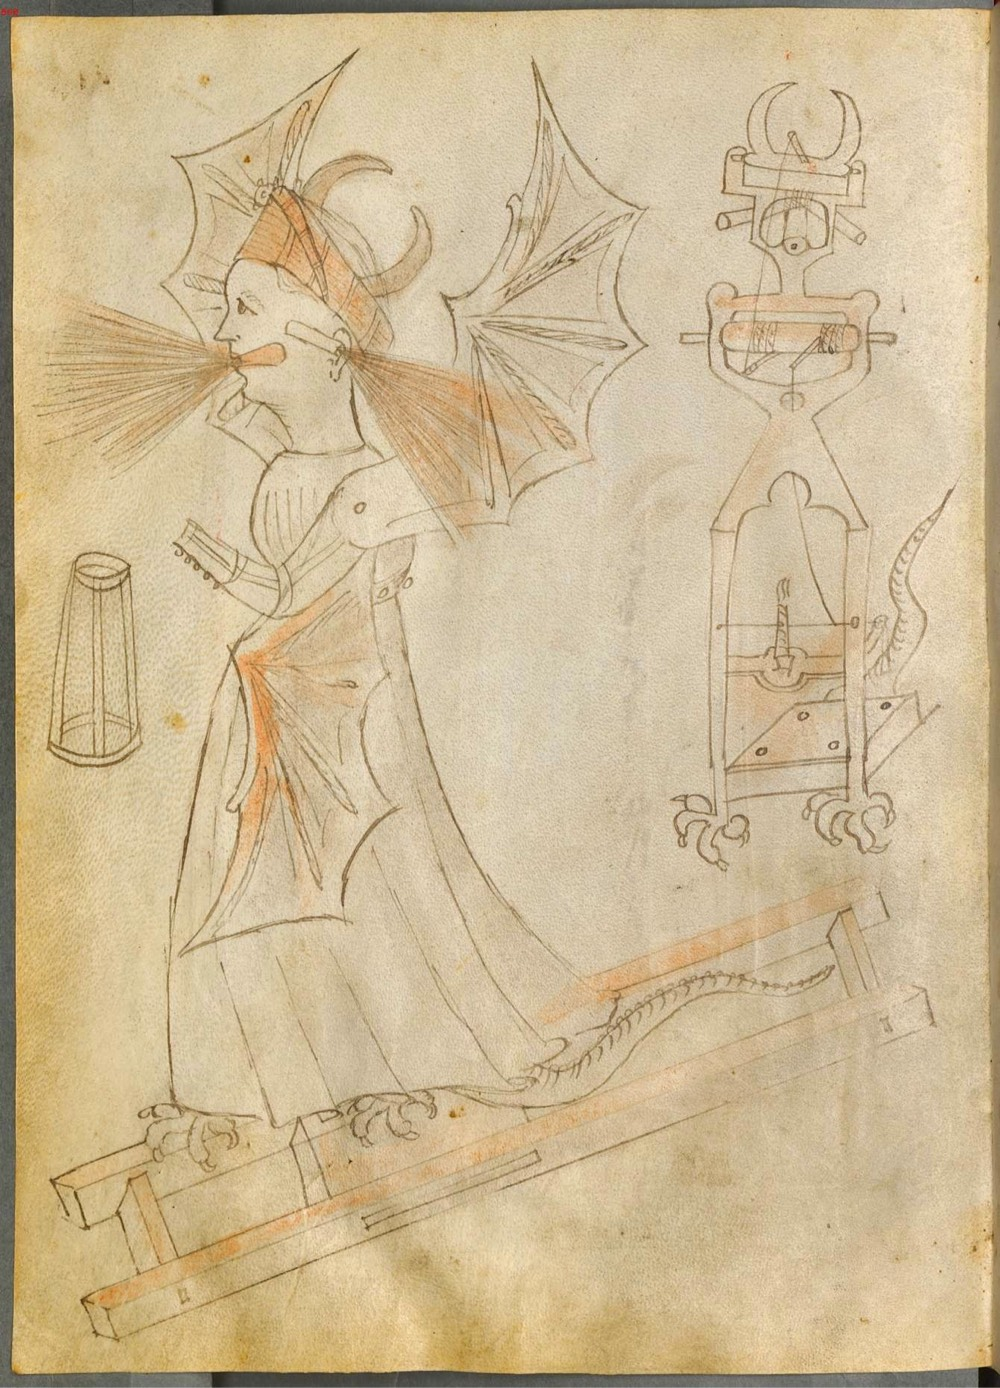 The Fantastical Drawings of an Inventive 15th-Century Italian Engineer